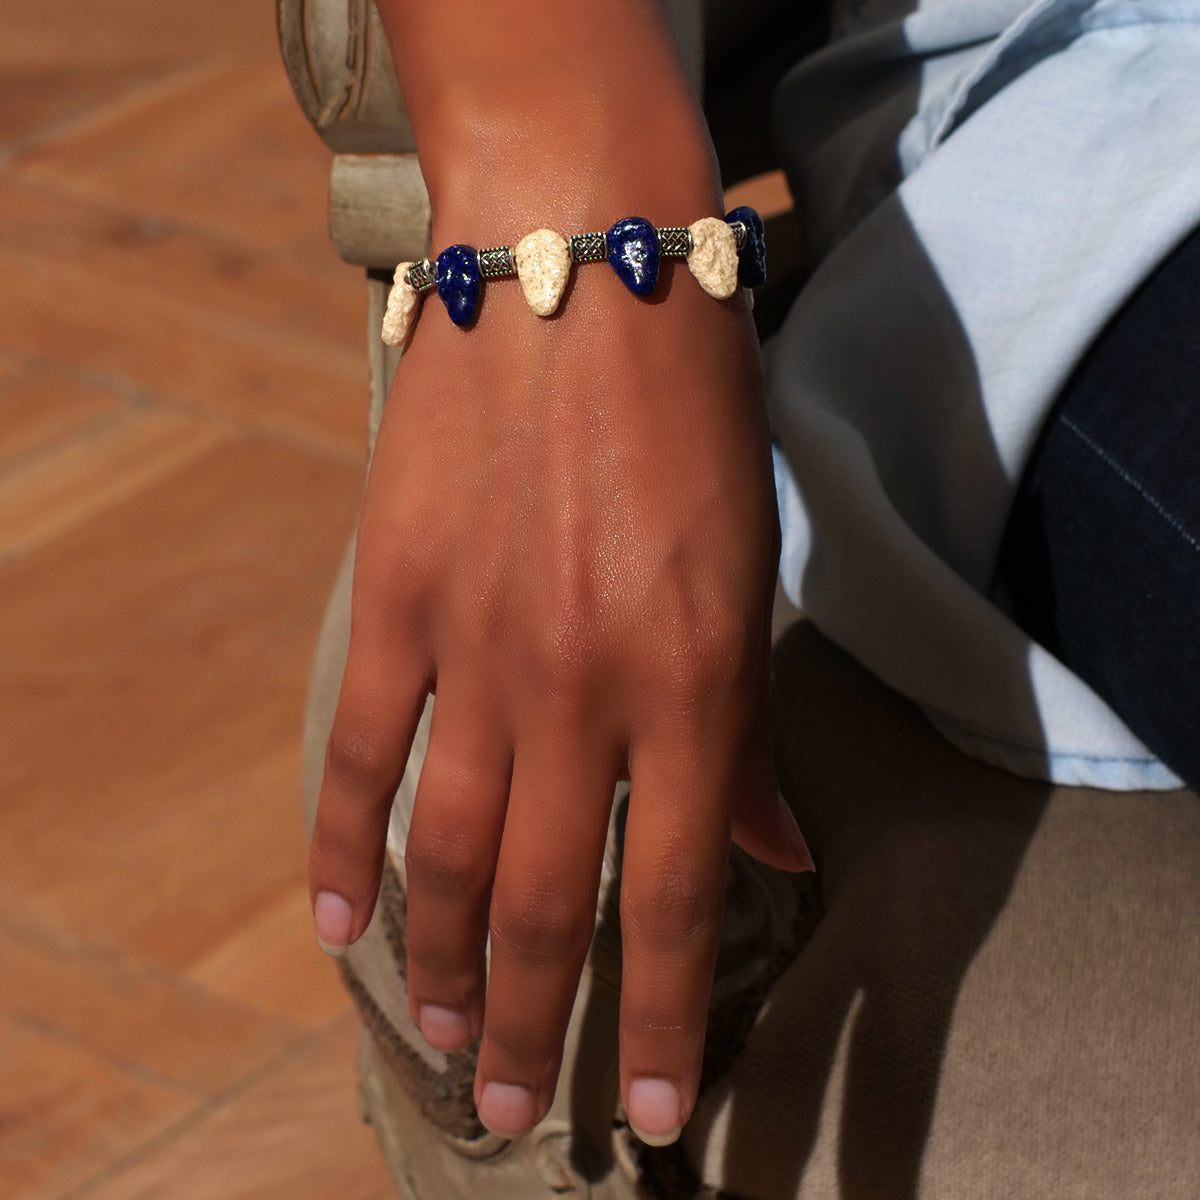 Women's Bracelet in Blue Indigo and Sand Tone Faience Ished Leaves - Em Hotep Collection